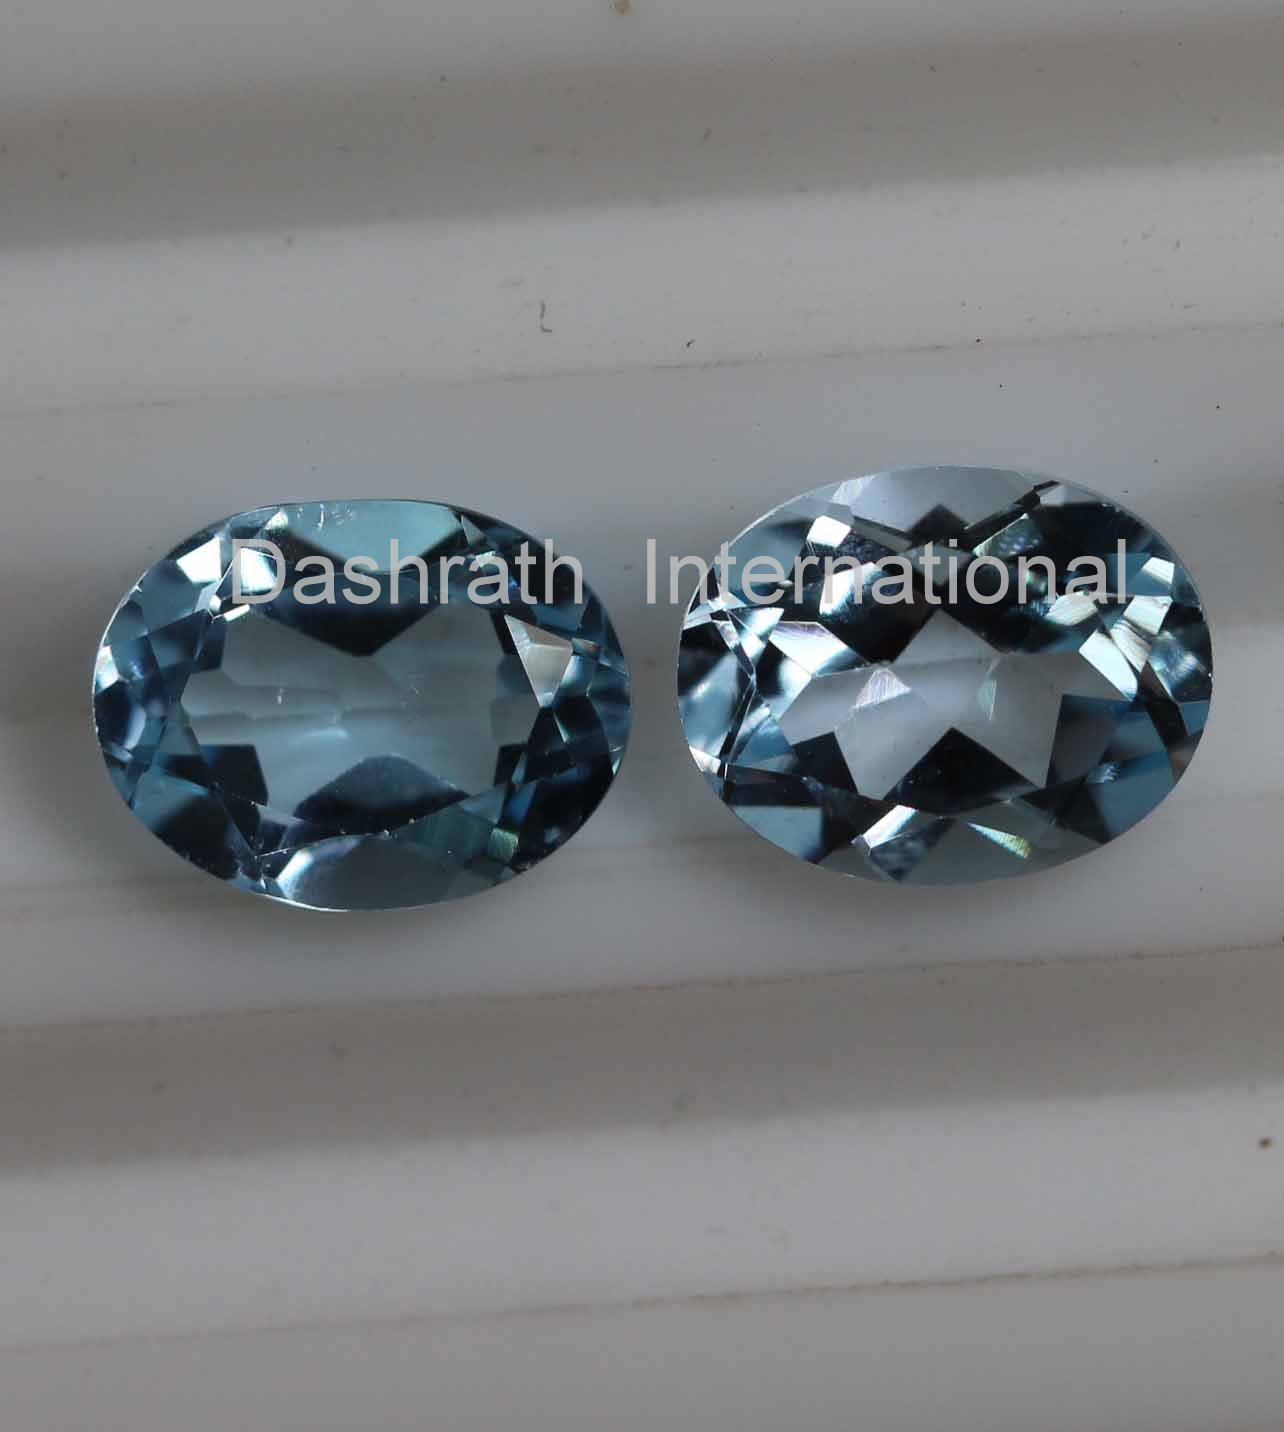 8x10mm  Natural Sky Blue Topaz Faceted Cut Oval  10 Pieces Lot  Top Quality Loose Gemstone